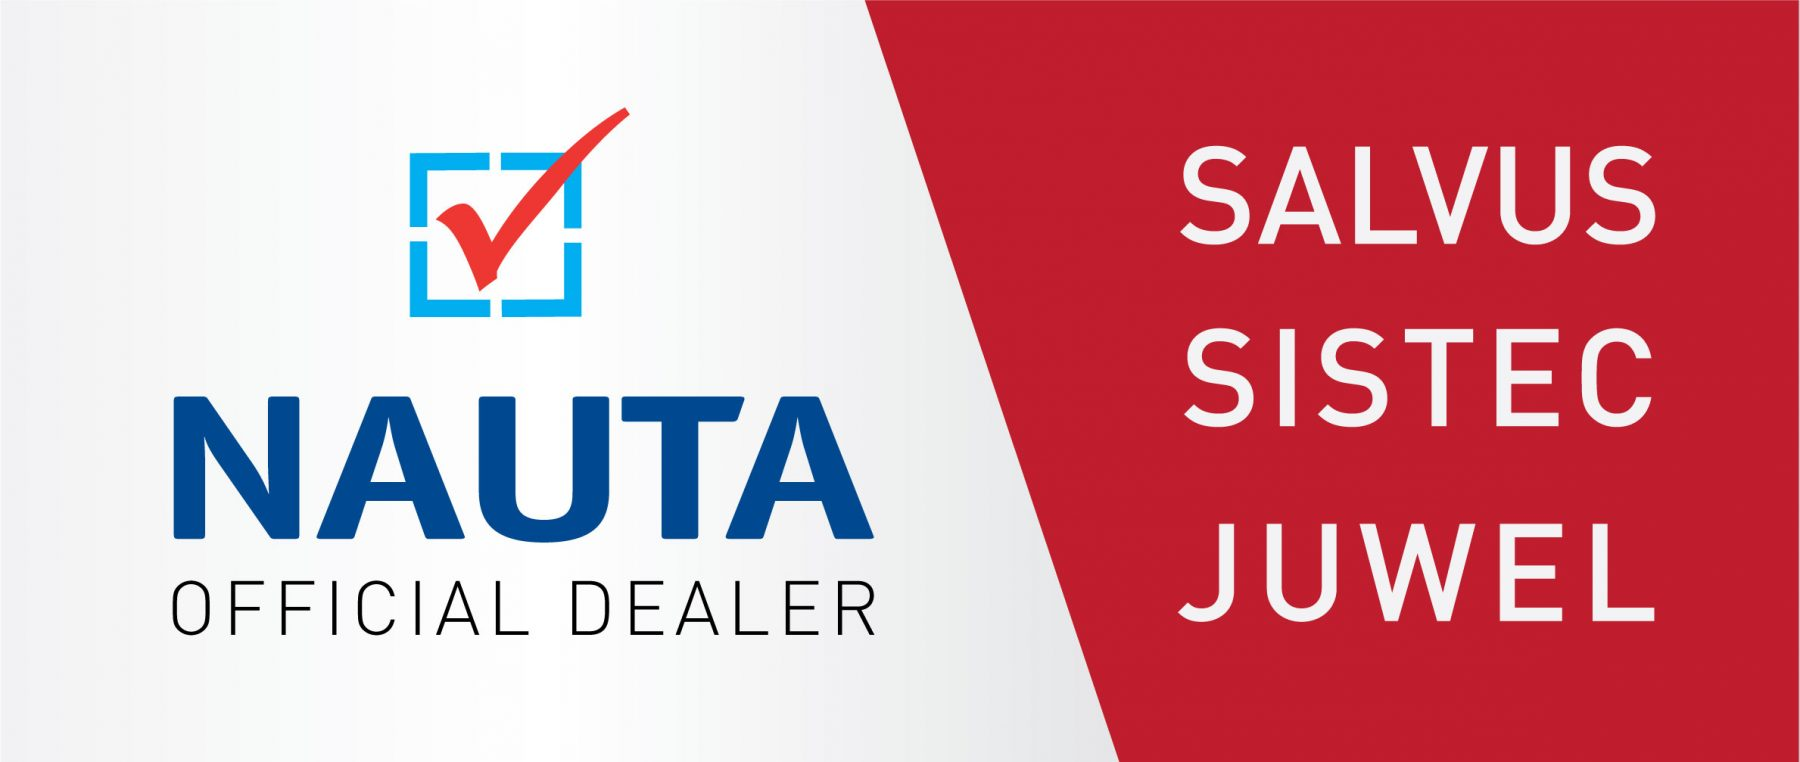 Nauta-Official-dealer-logo